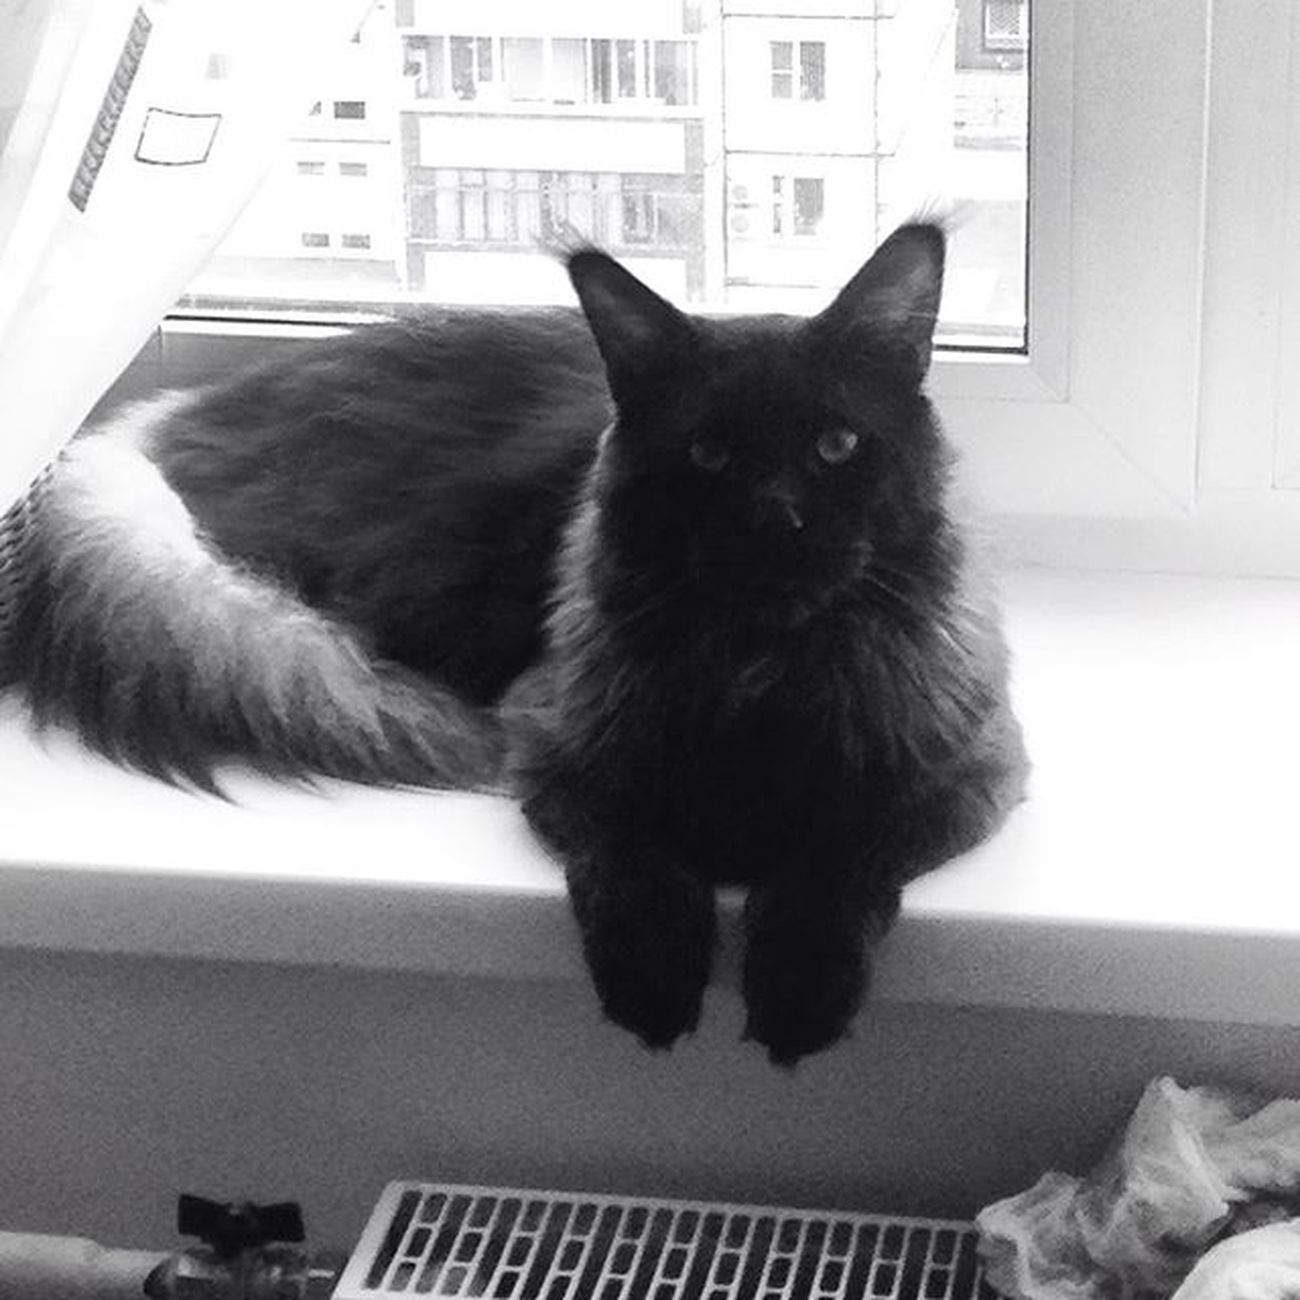 Приветики✋🏾Instacats Cat Kitty Blackandwhite Mainecoon Catsofinstagram Cat Black Blackmainecoon OHMYGOD Katze Kitty Kitten Coonies BLackCat Bigcat Pet Petsofinstagram Petstagram Instacat Catstagram Dailycat